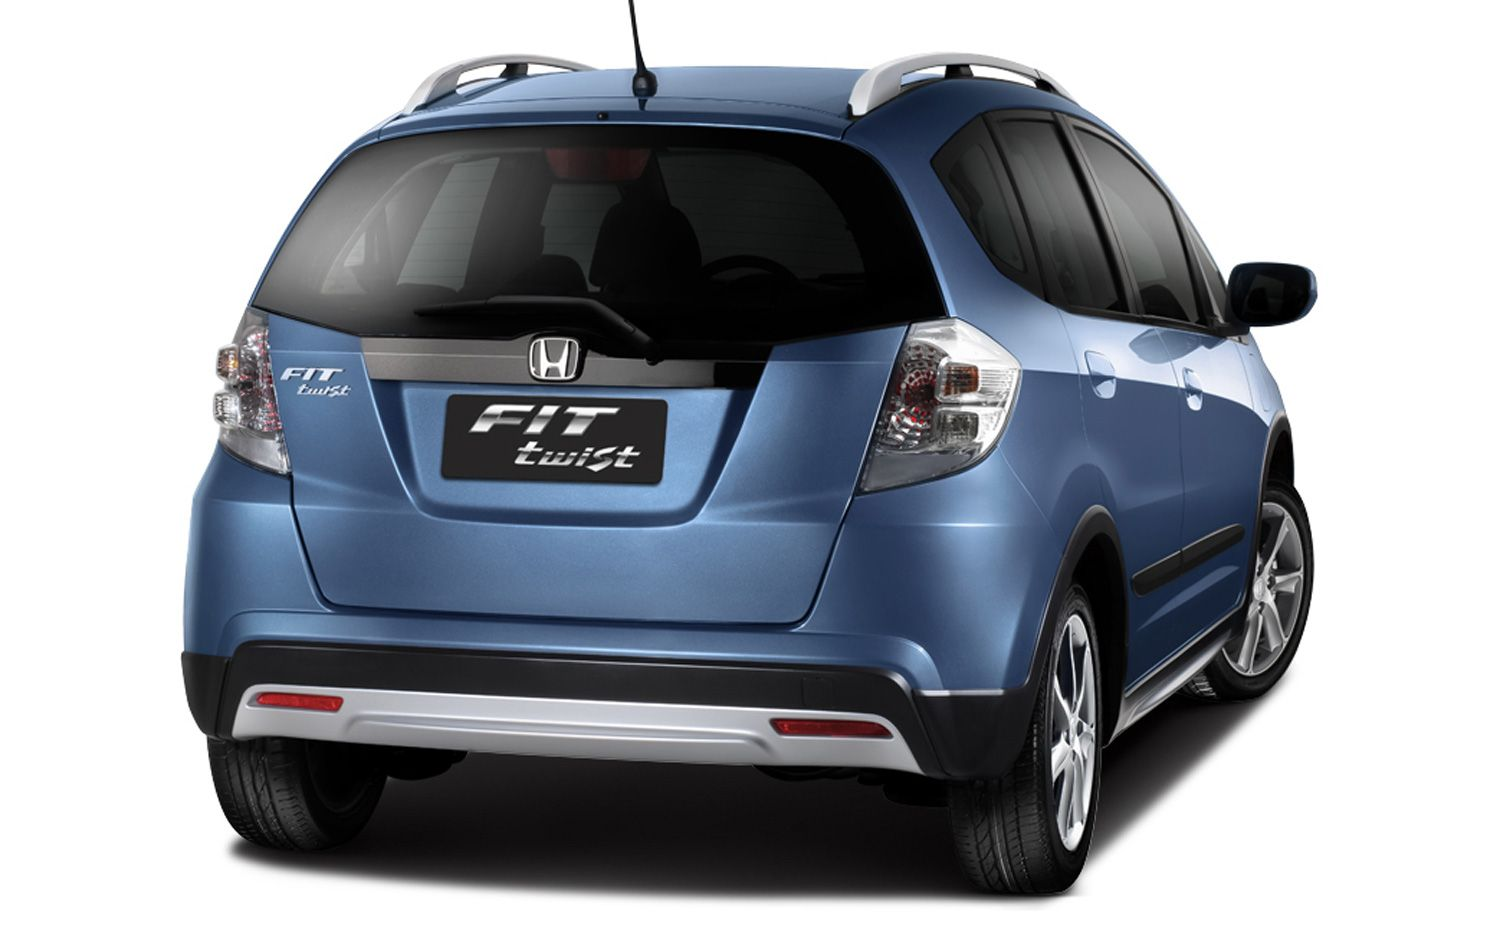 2013 Honda Fit Small Cars 2013 honda fit, Honda fit